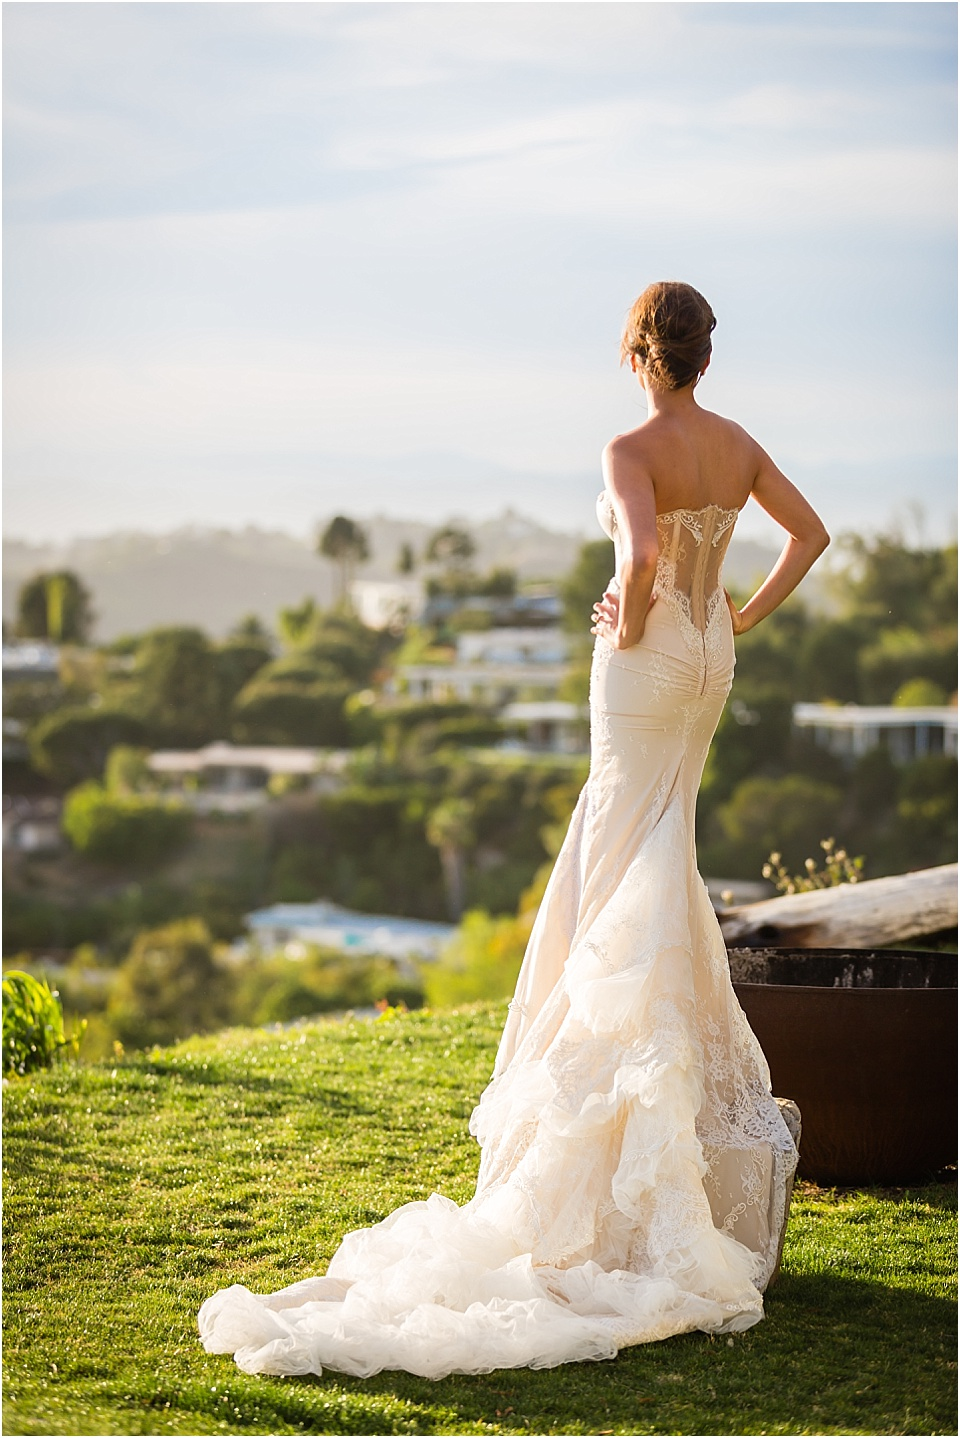 Los Angeles Hills Elopement, Inbal Dror Wedding Dress, Treehouse, 360 Views of LA, City Sky line Wedding, Hollywood Hills Wedding, Valorie Darling Photography, Los Angeles Wedding Photographer